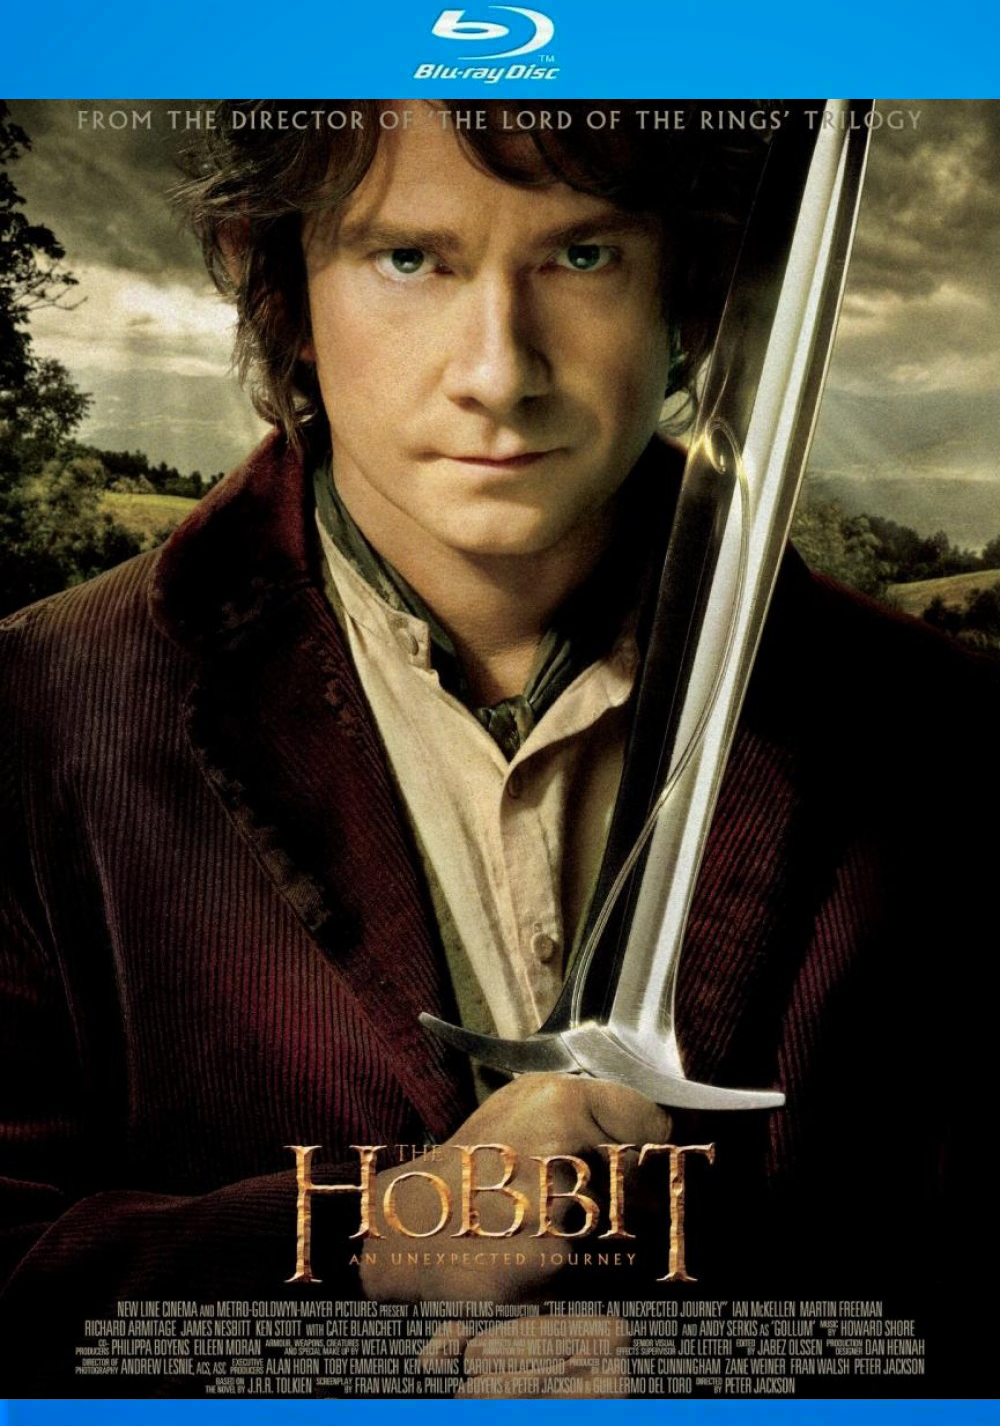 Download O Hobbit: Uma Jornada Inesperada (2012) Dublado MKV 720p BDRip MEGA